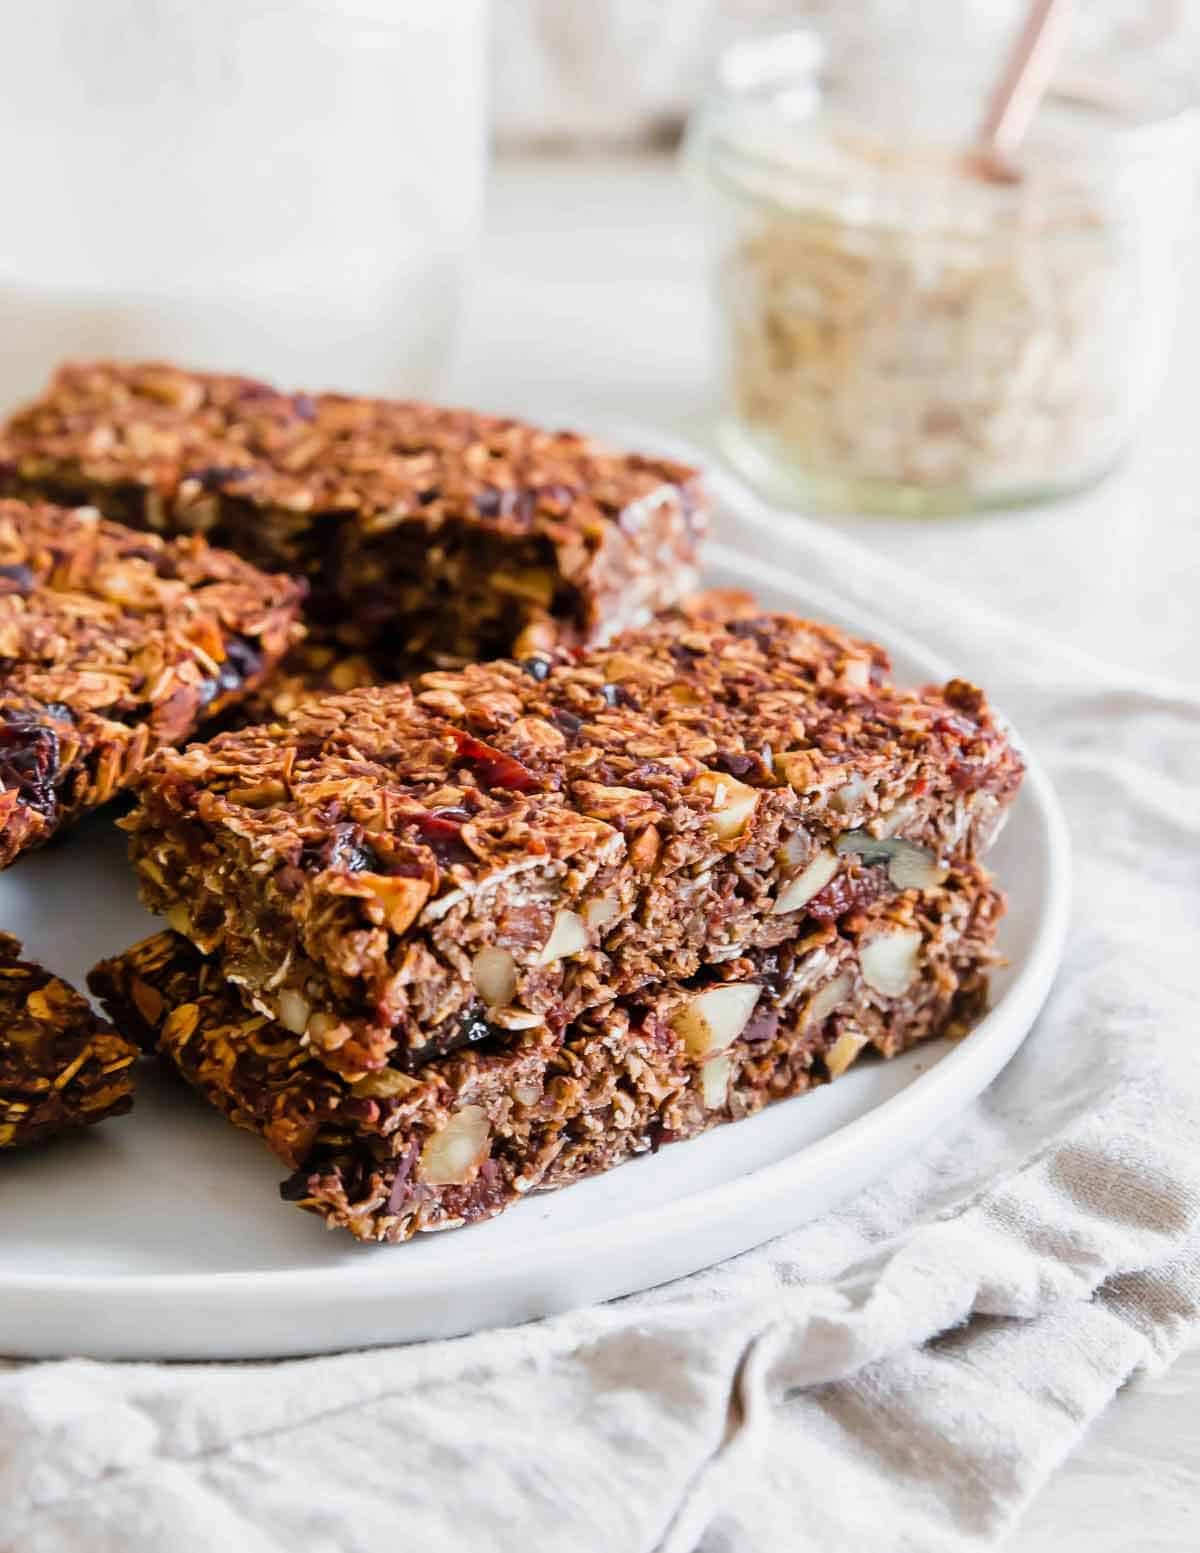 Chocolate granola bars are an easy homemade snack with healthy ingredients.